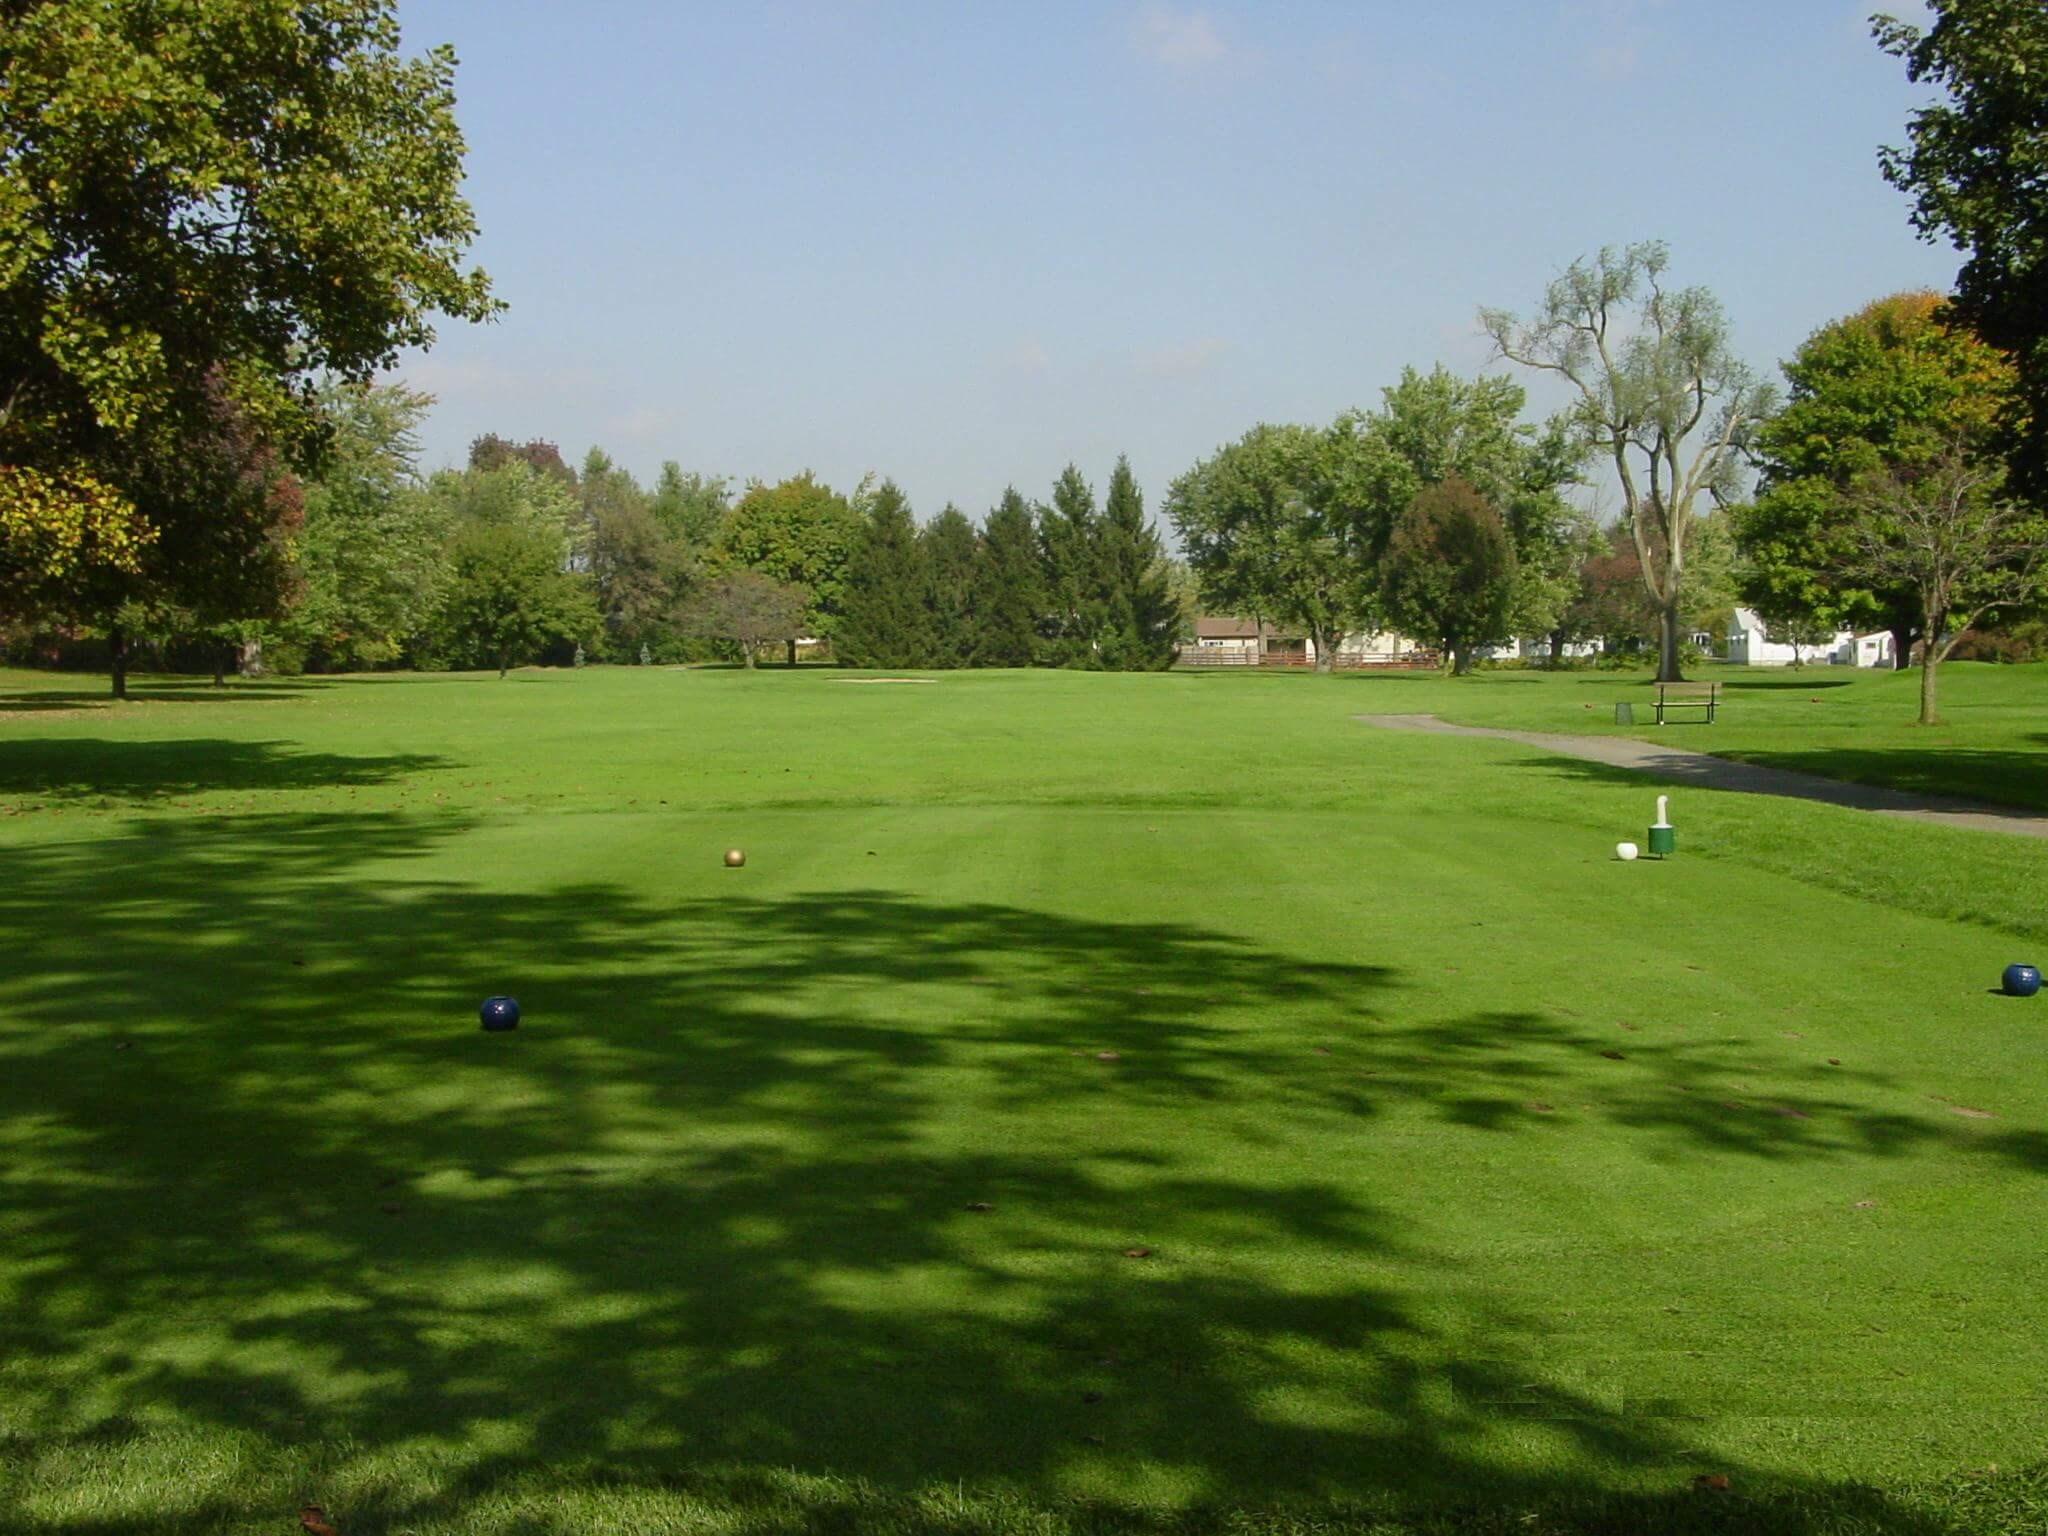 Hole 15 on the golf course